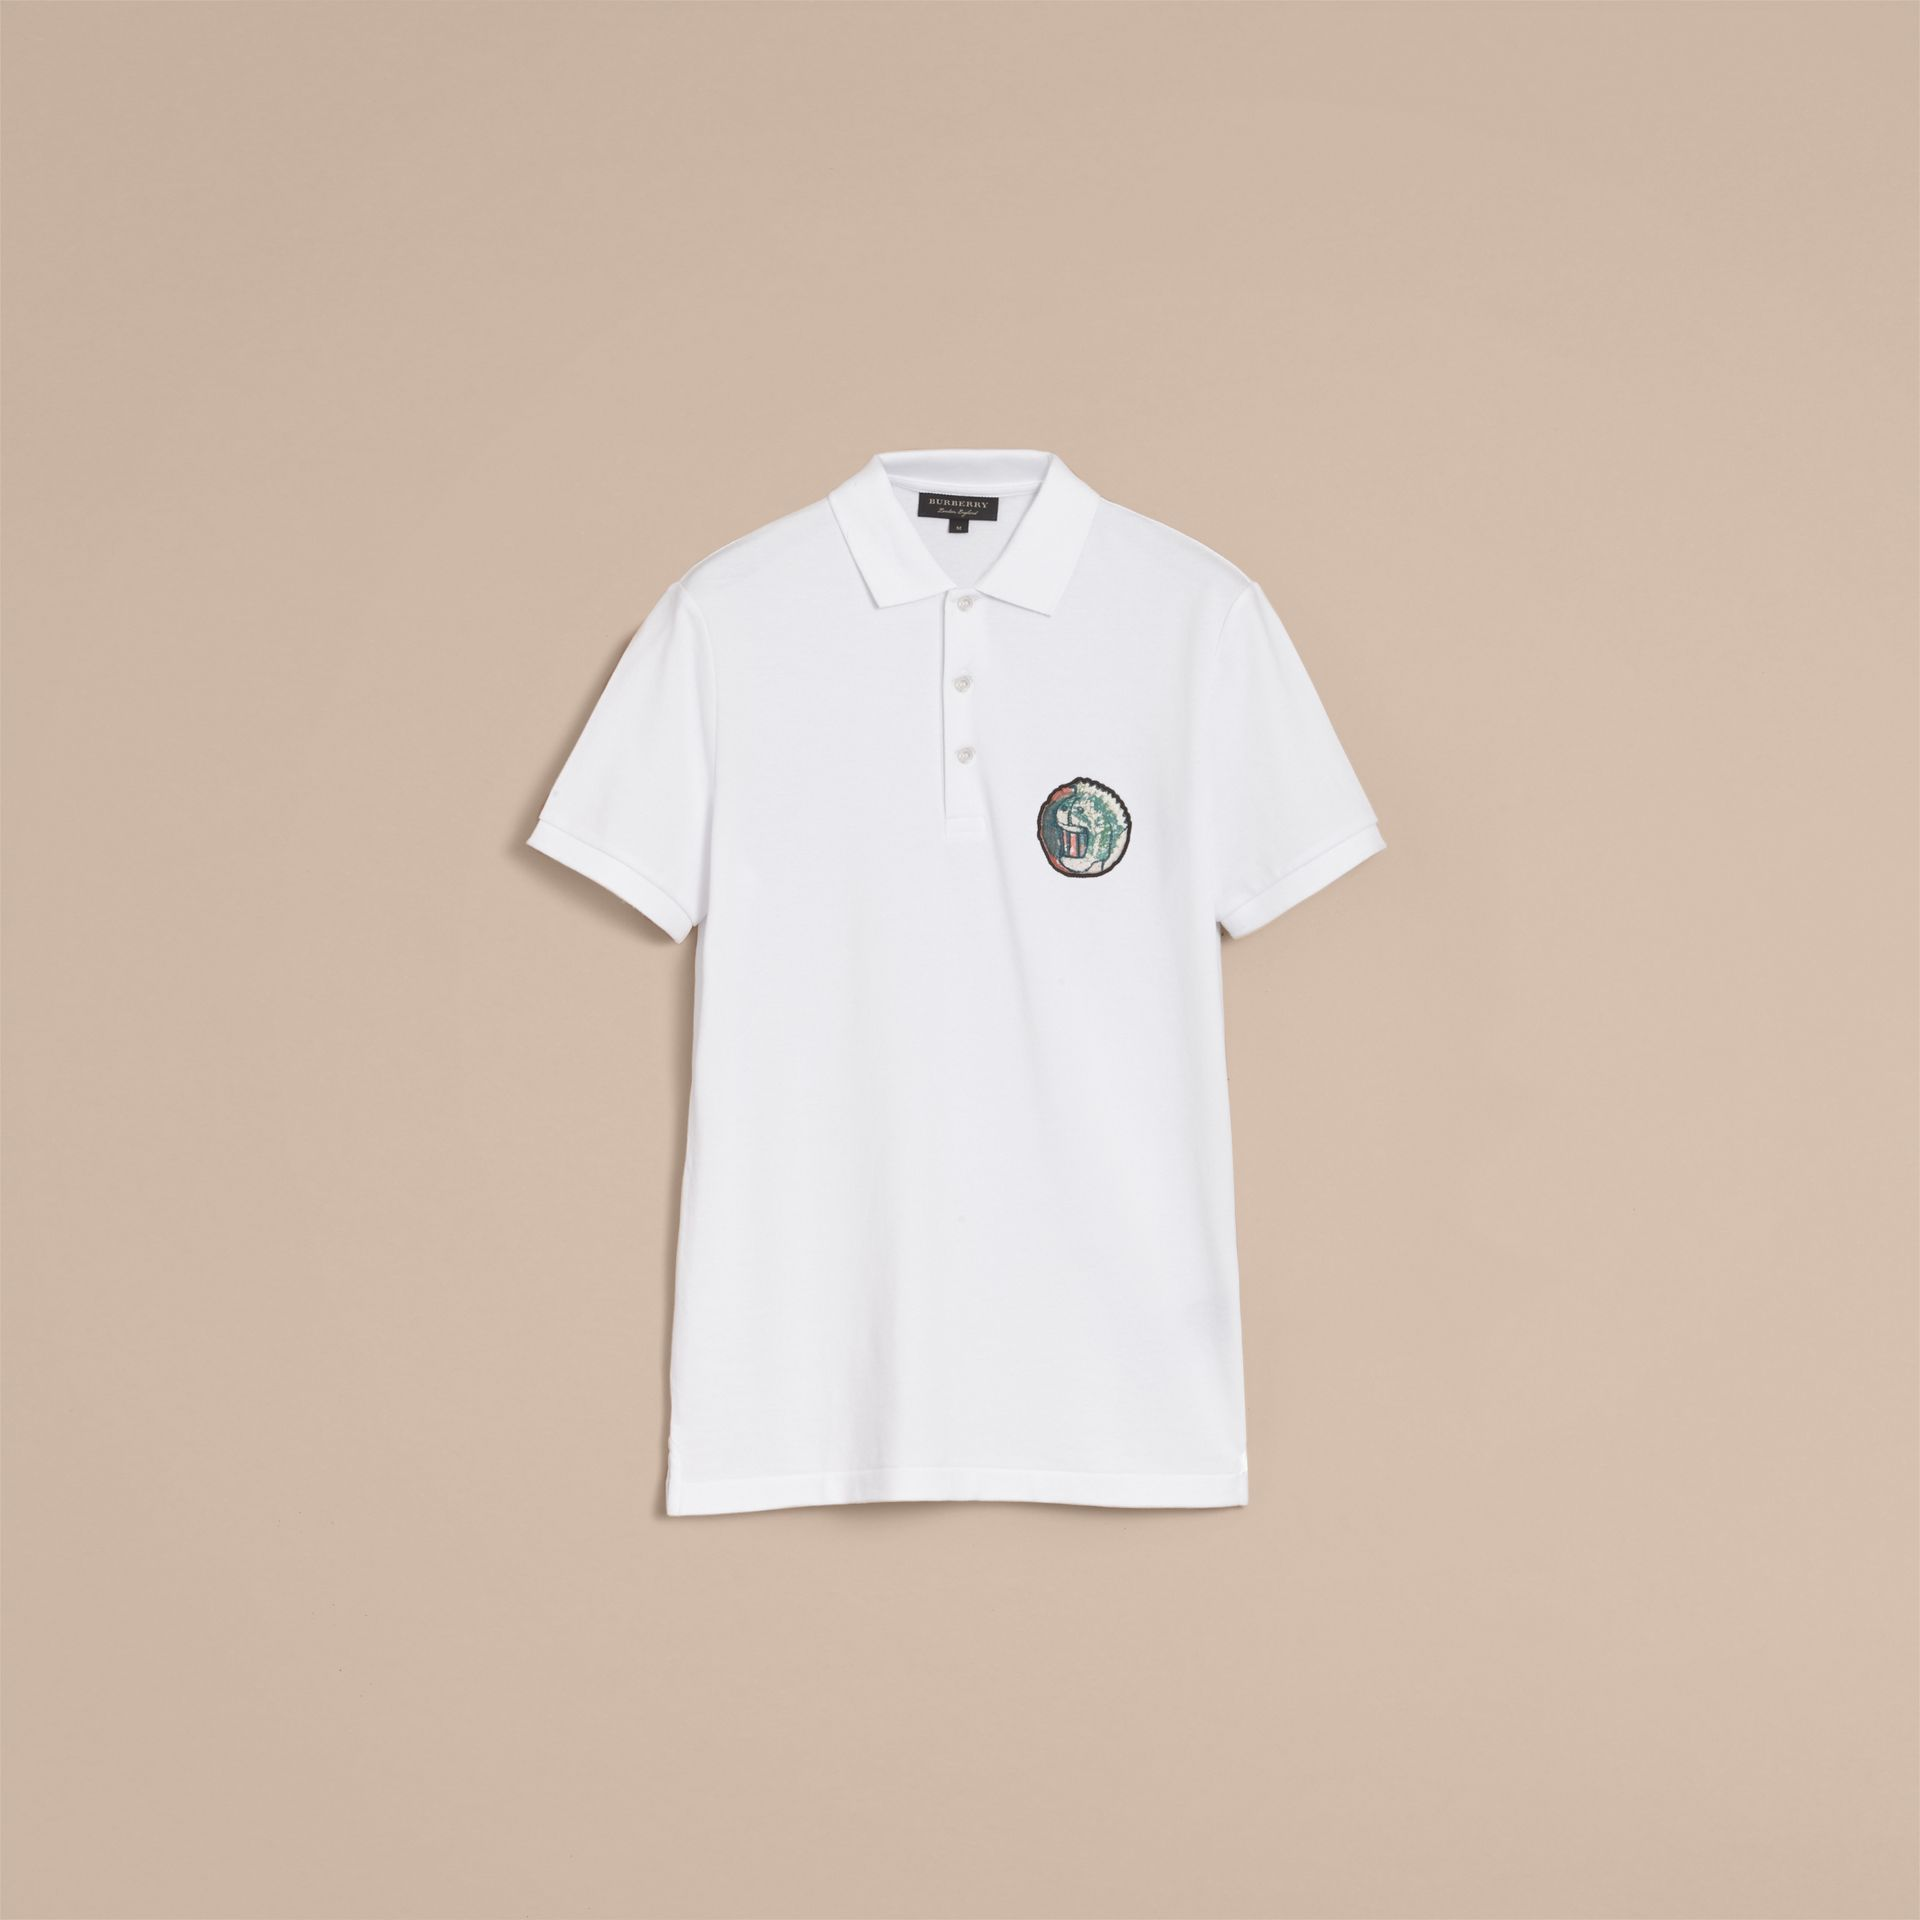 Pallas Heads Appliqué Cotton Polo Shirt in White - Men | Burberry Singapore - gallery image 4